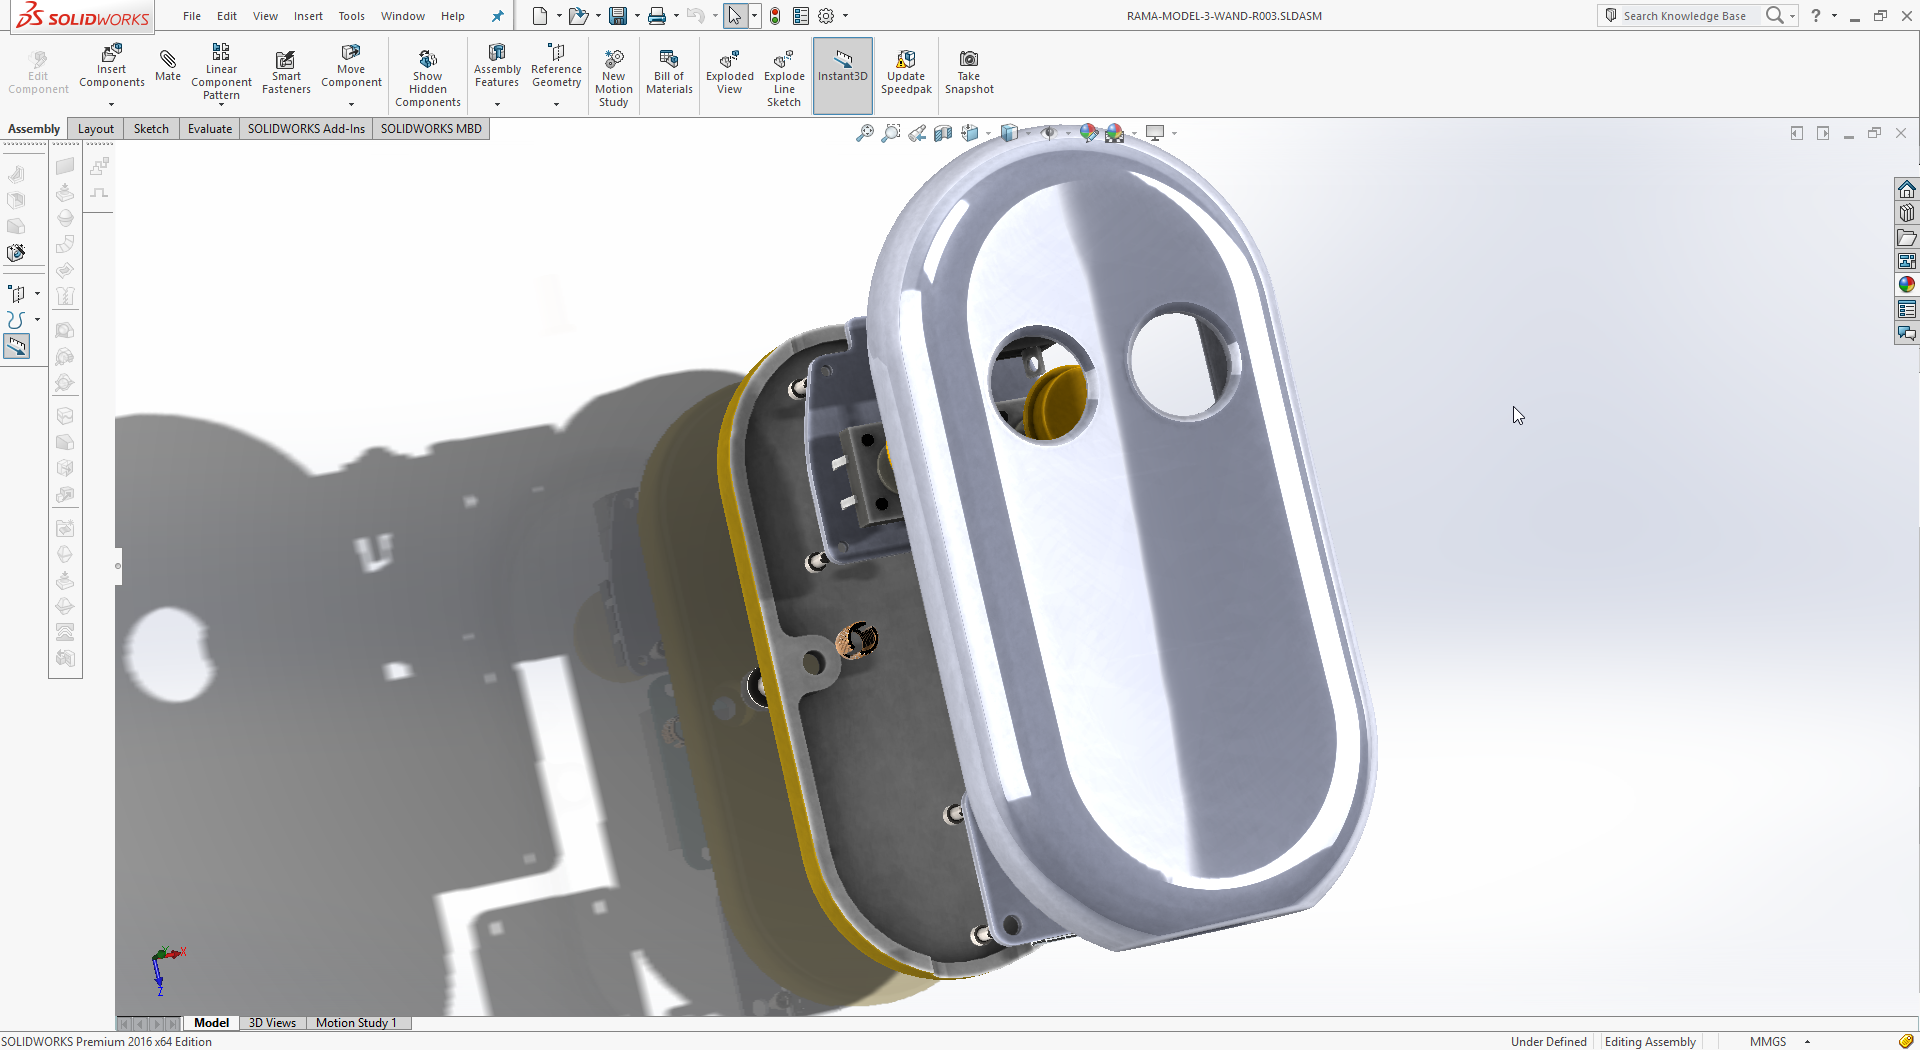 SOLIDWORKS_Premium_2016_x64_Edition_-_[RAMA-MODEL-_2015-11-08_17-04-20.png